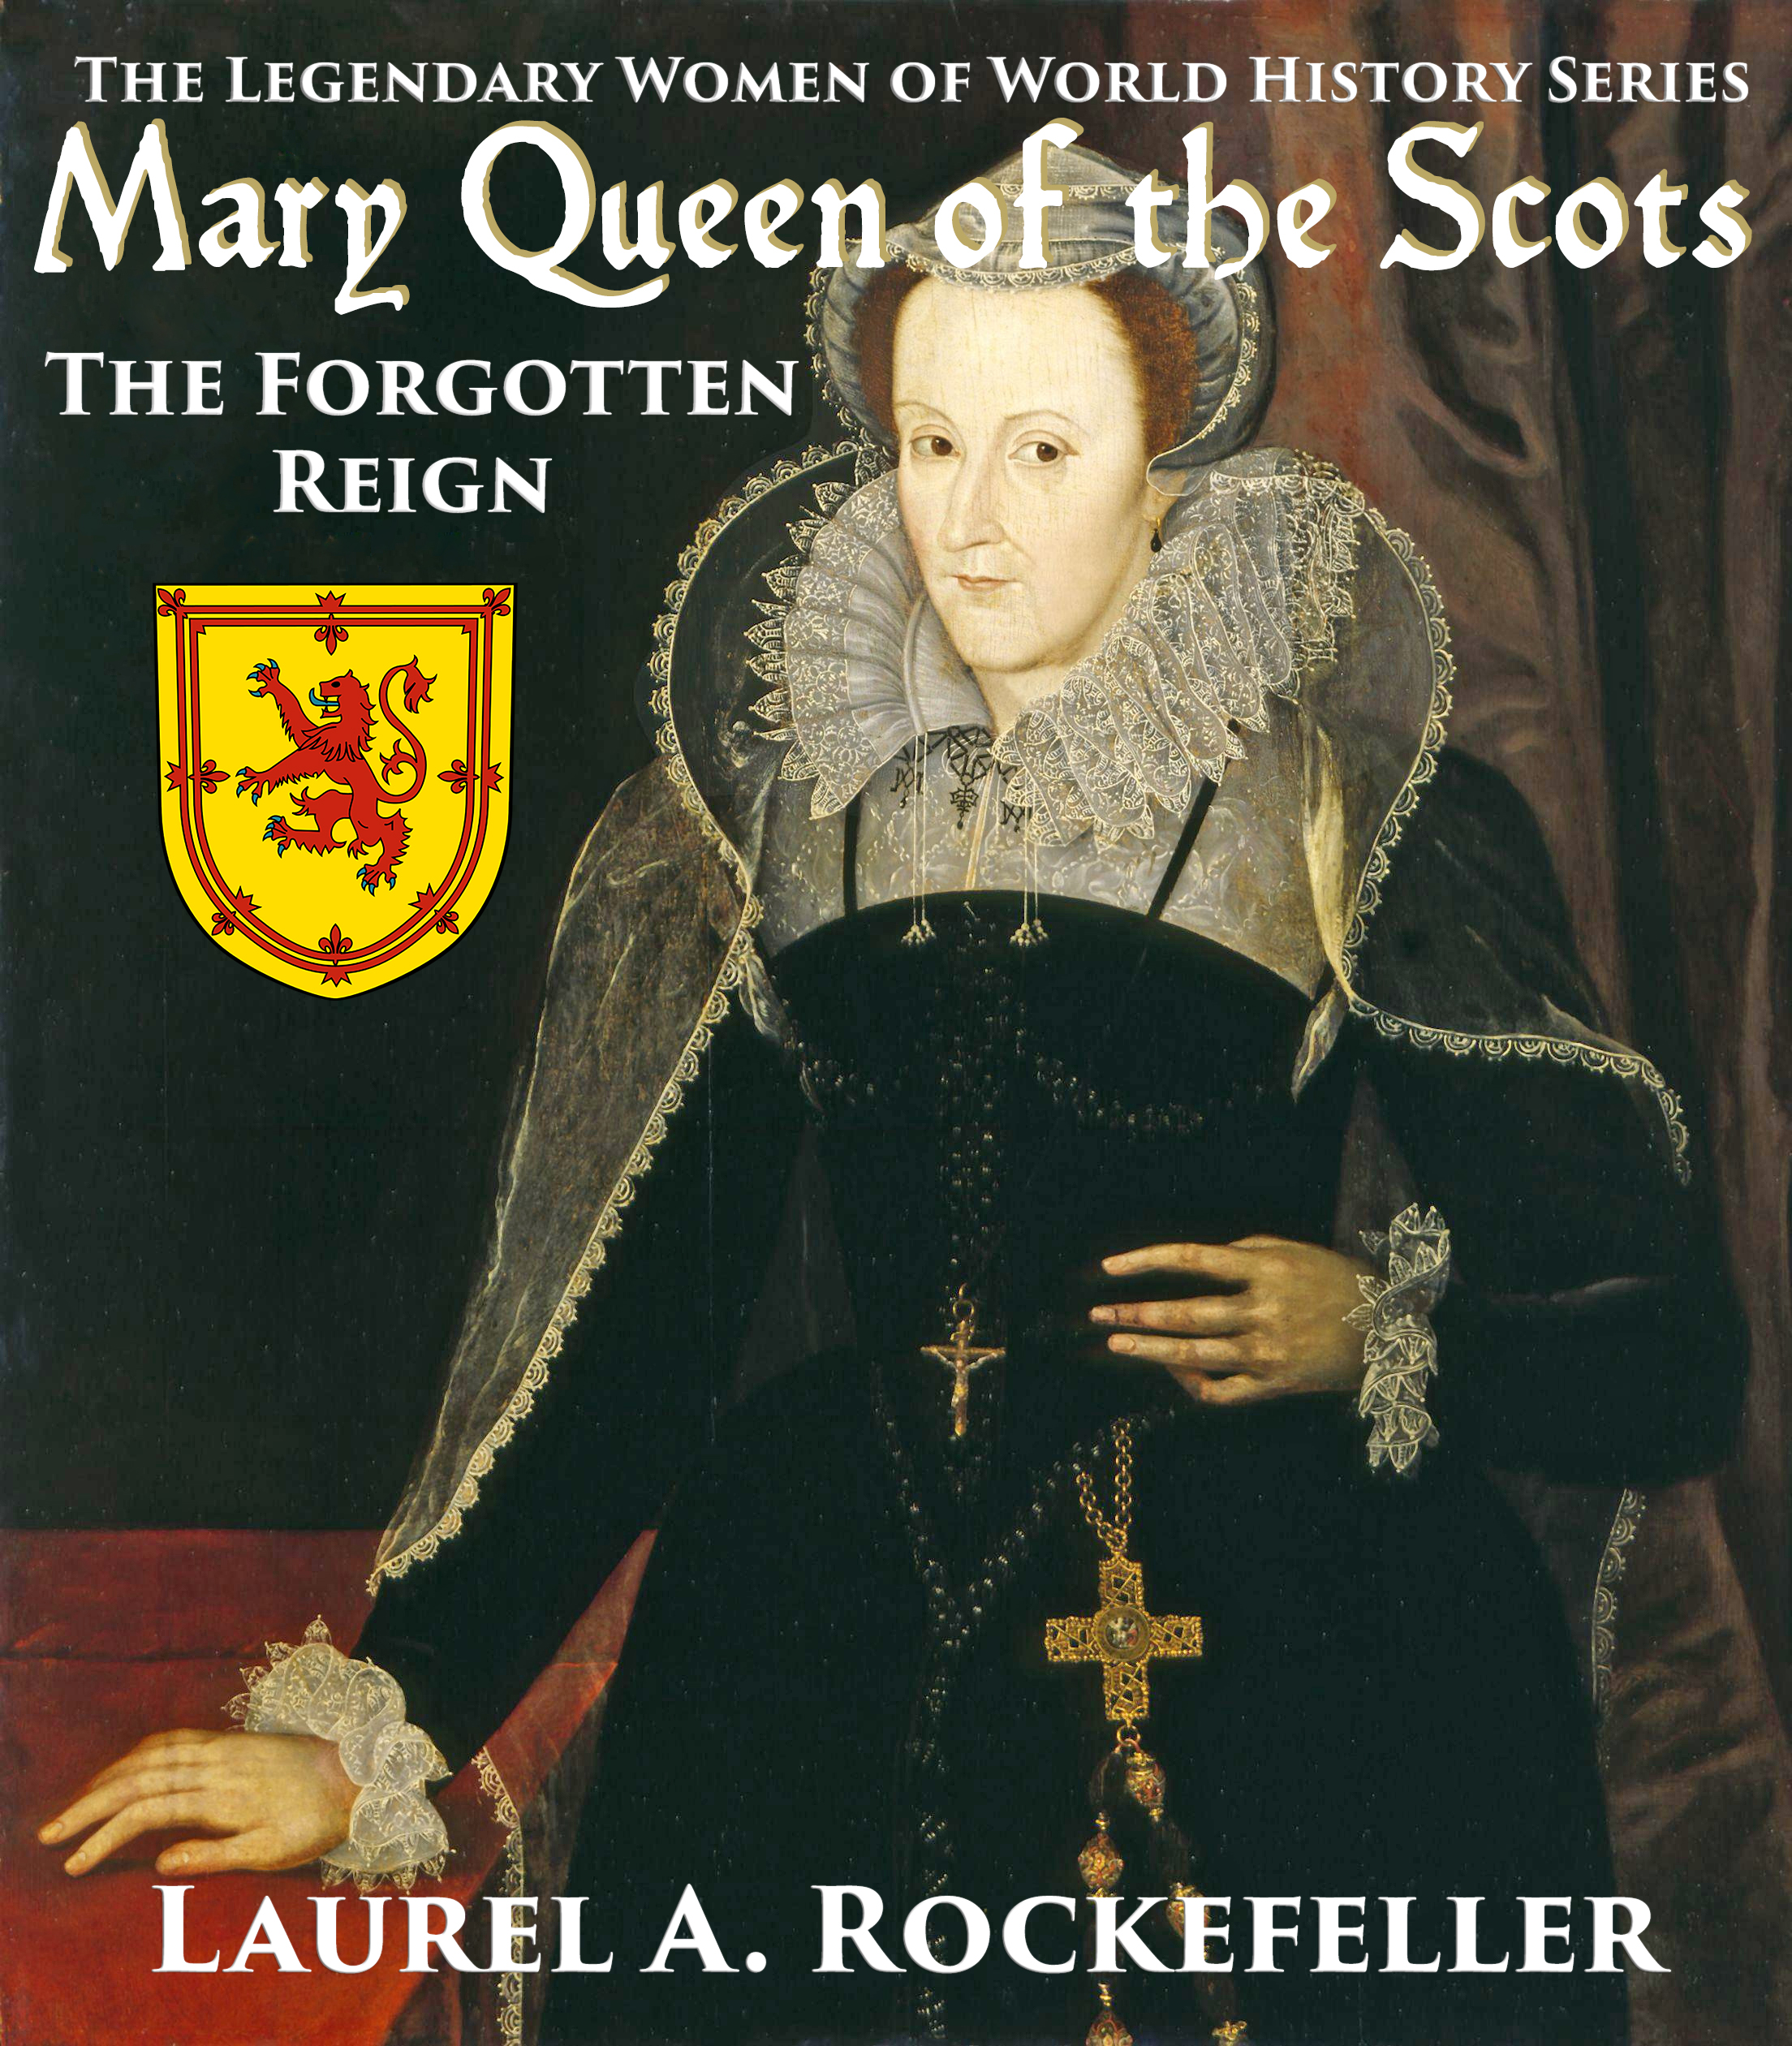 Mary queen of the scots: the forgotten reign